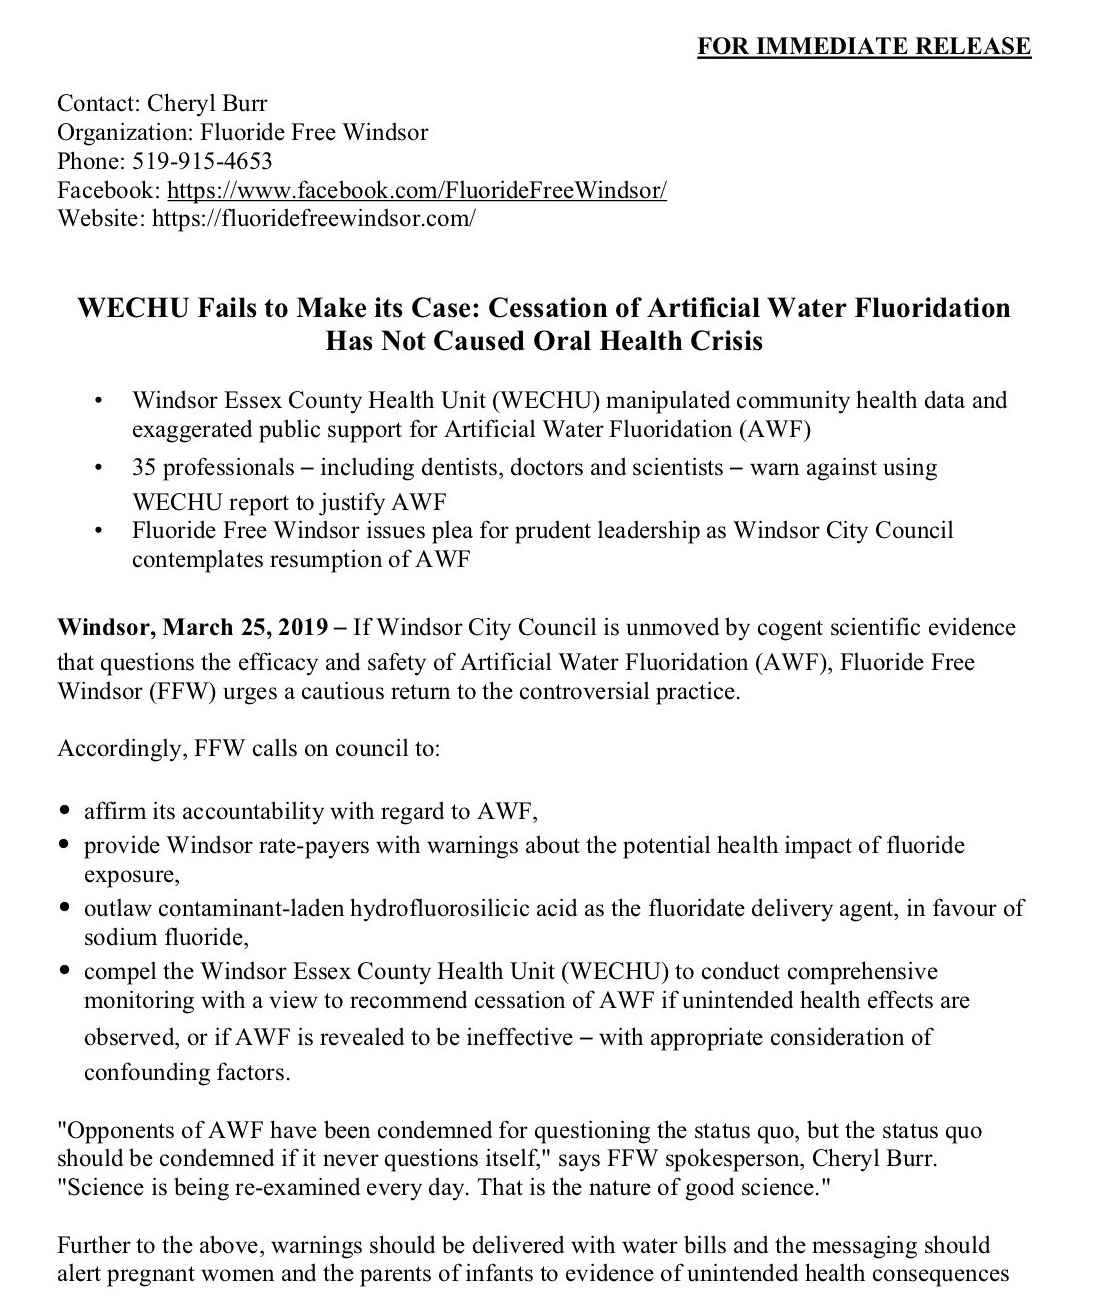 news-release-ffw-demands-fact-check-final-2-e1553490825891.jpg